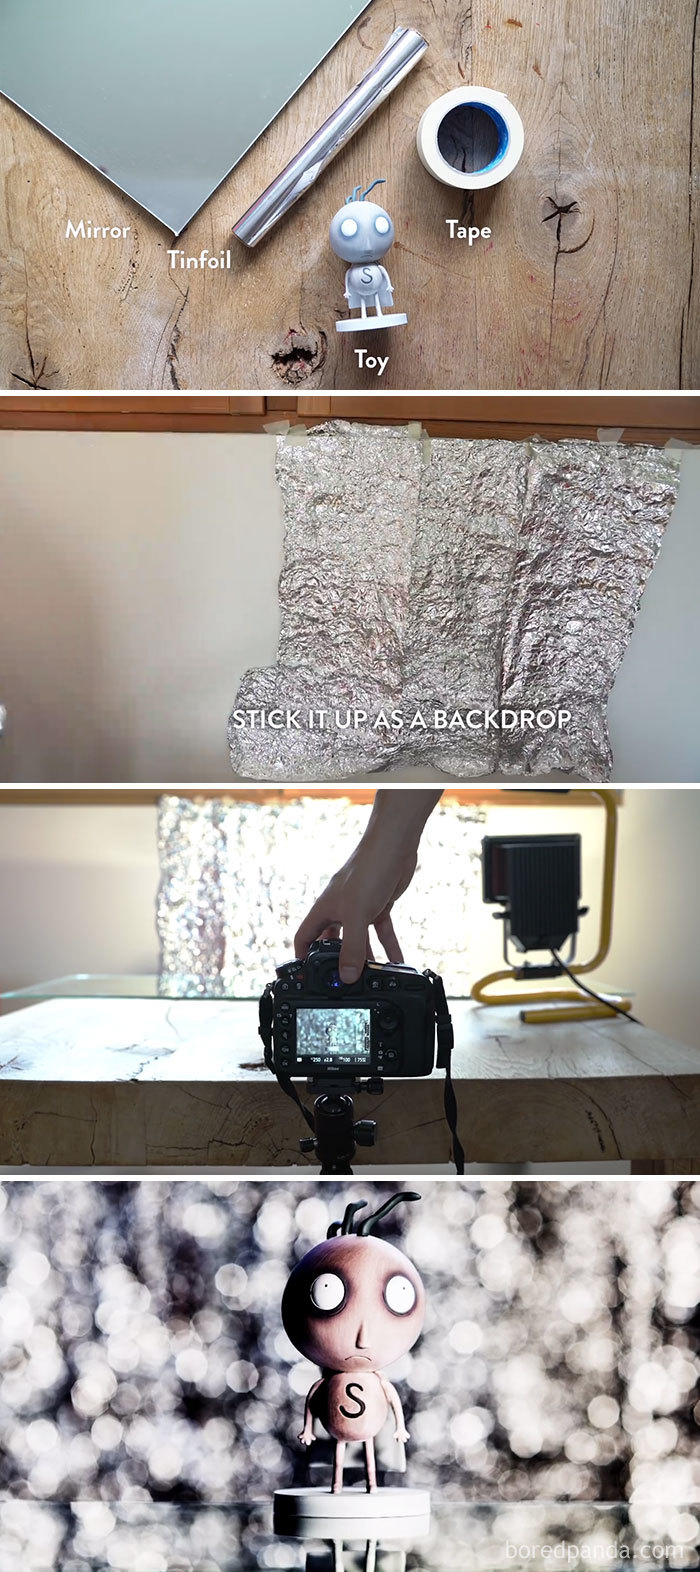 #1 Use Tinfoil To Create A Wall Of Bokeh - 10 Genius Camera Hacks That Will Greatly Improve Your Photography Skills In Less Than 3 Minutes